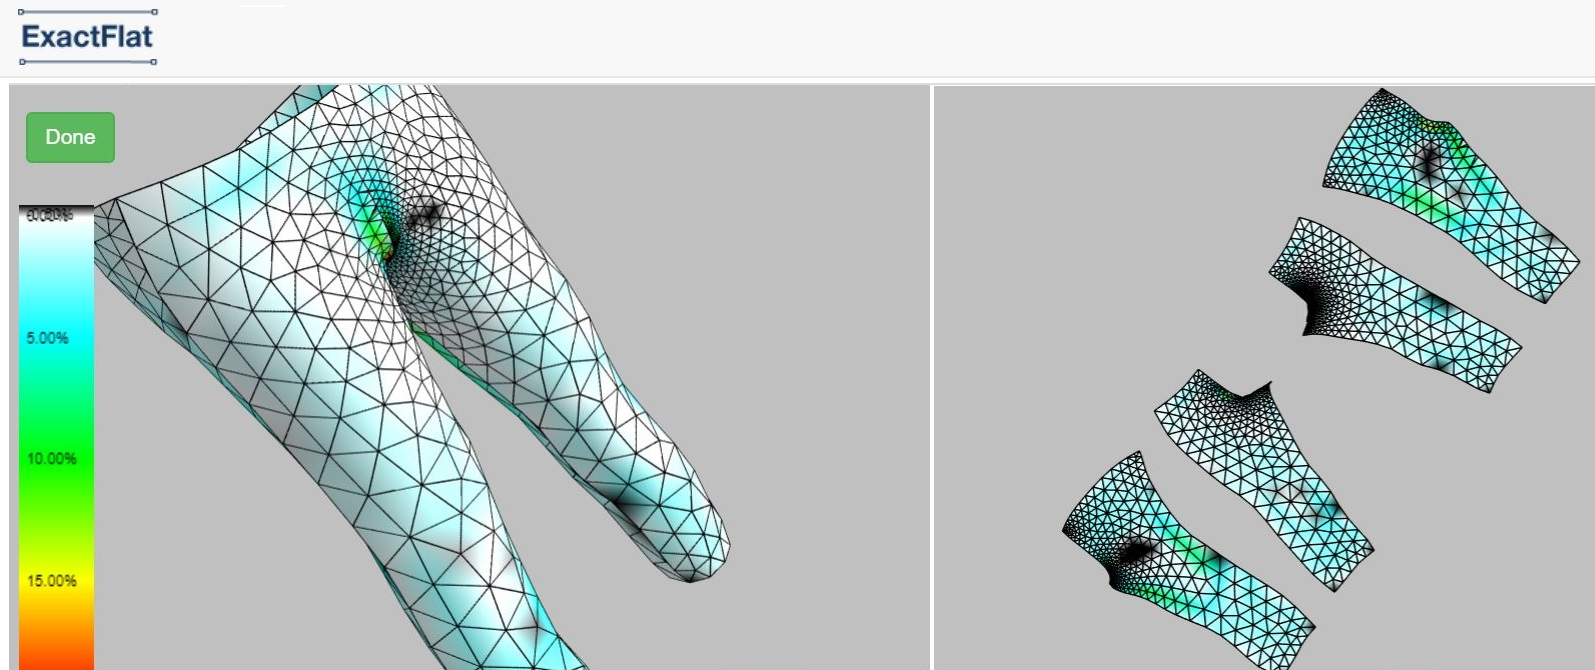 With the new generation of 3D to 2D flattening tools like ExactFlat designers can convert their concepts to production ready patterns in minutes.